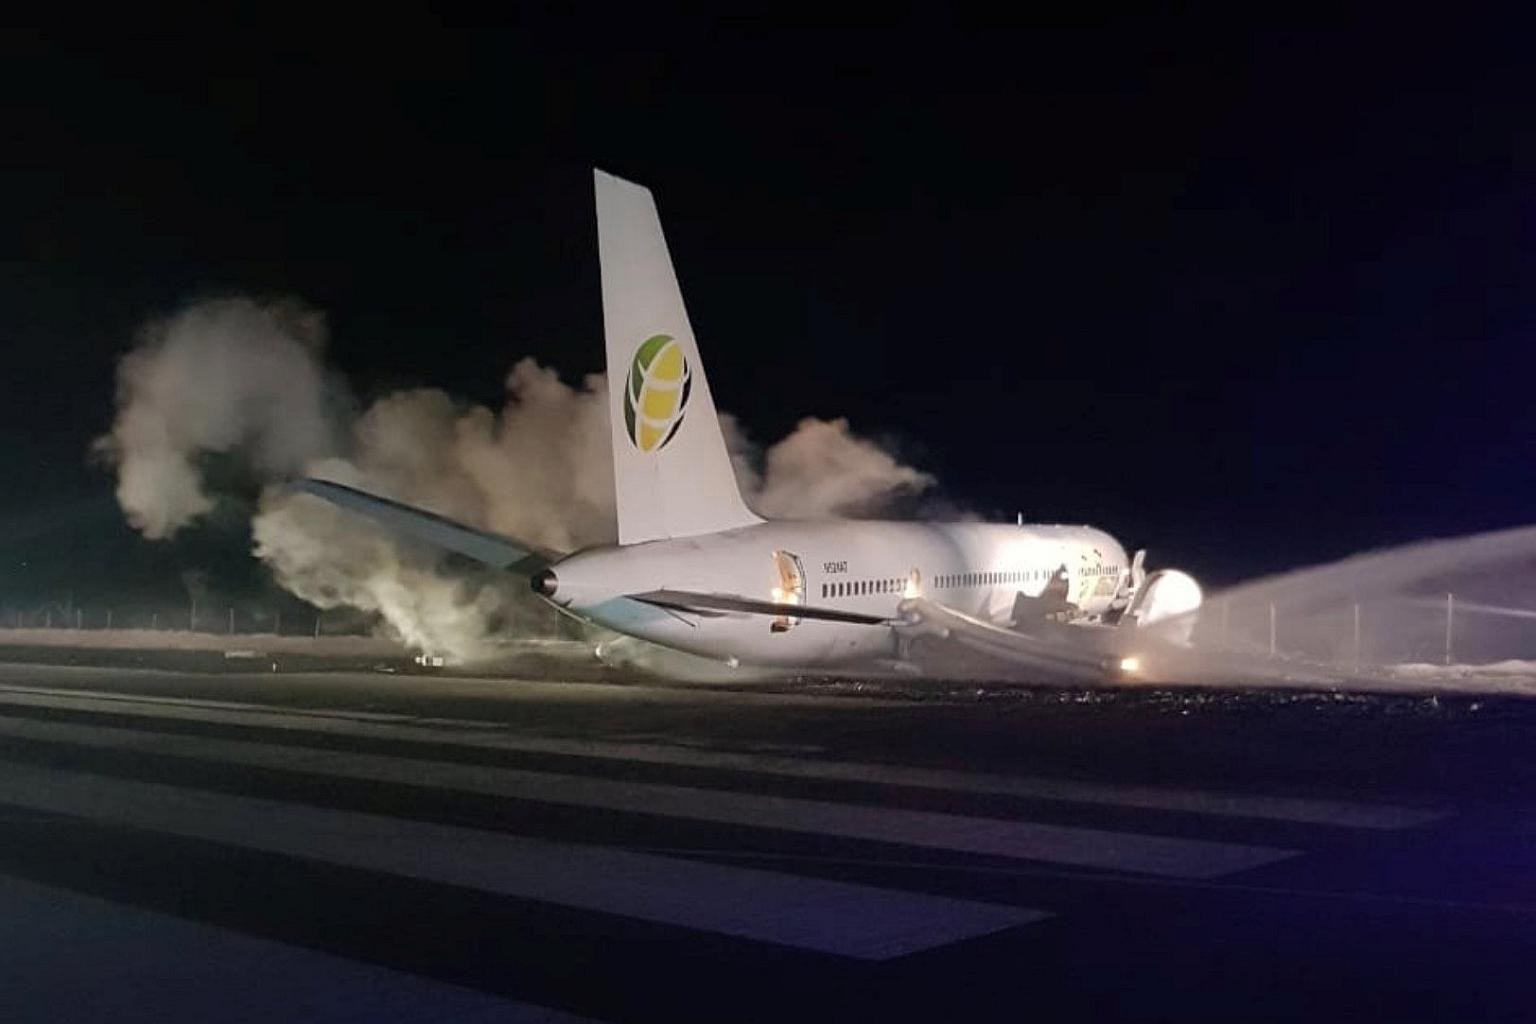 Fly Jamaica Makes Emergency Landing In Guyana - Six Injured